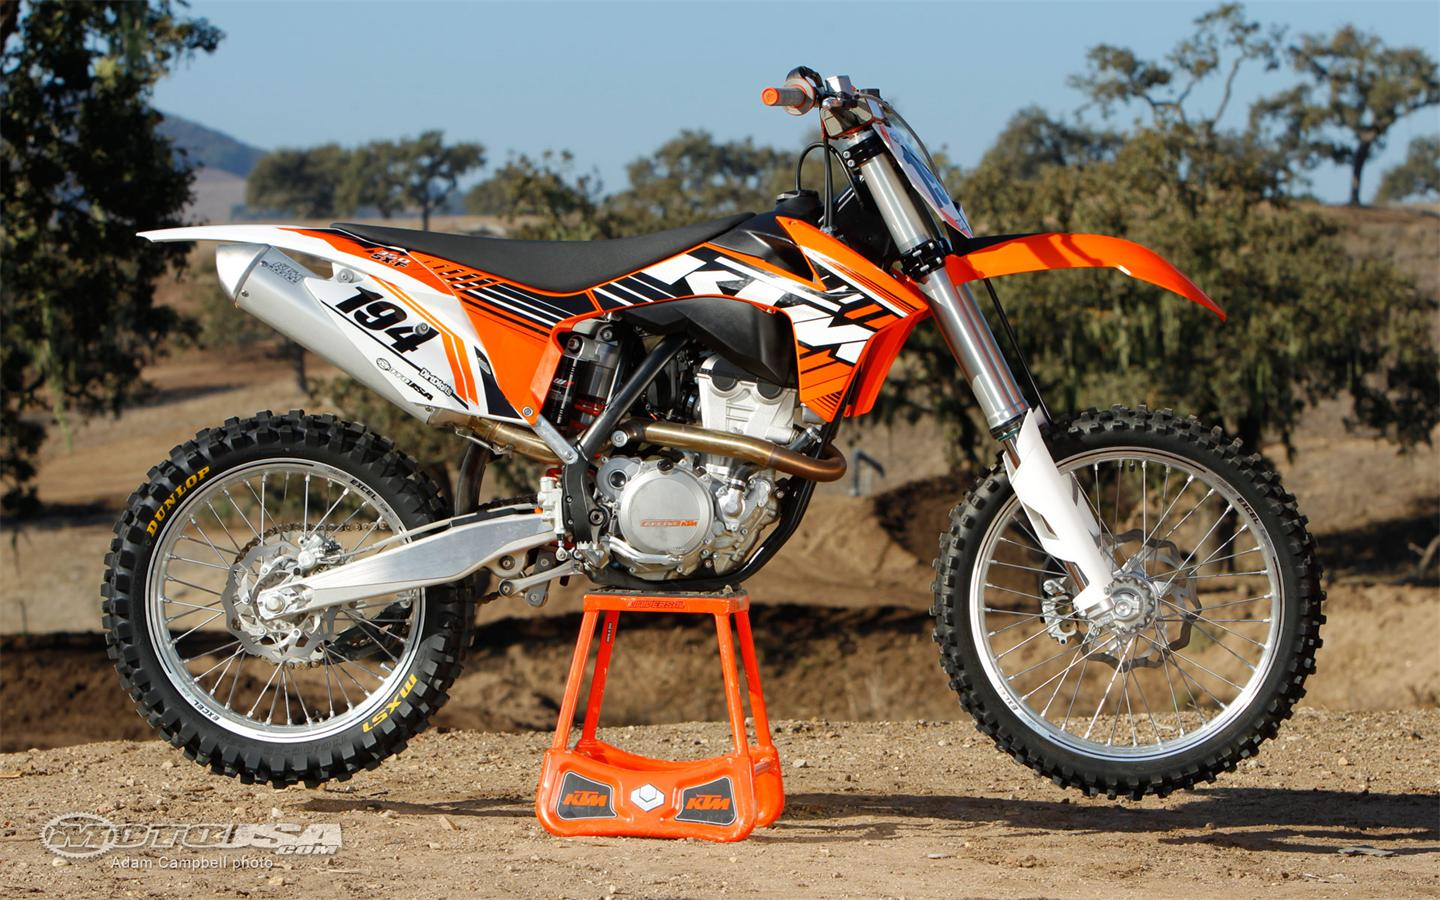 KTM Dirt Bike Wallpapers   2 of 6   1440x900 1440x900